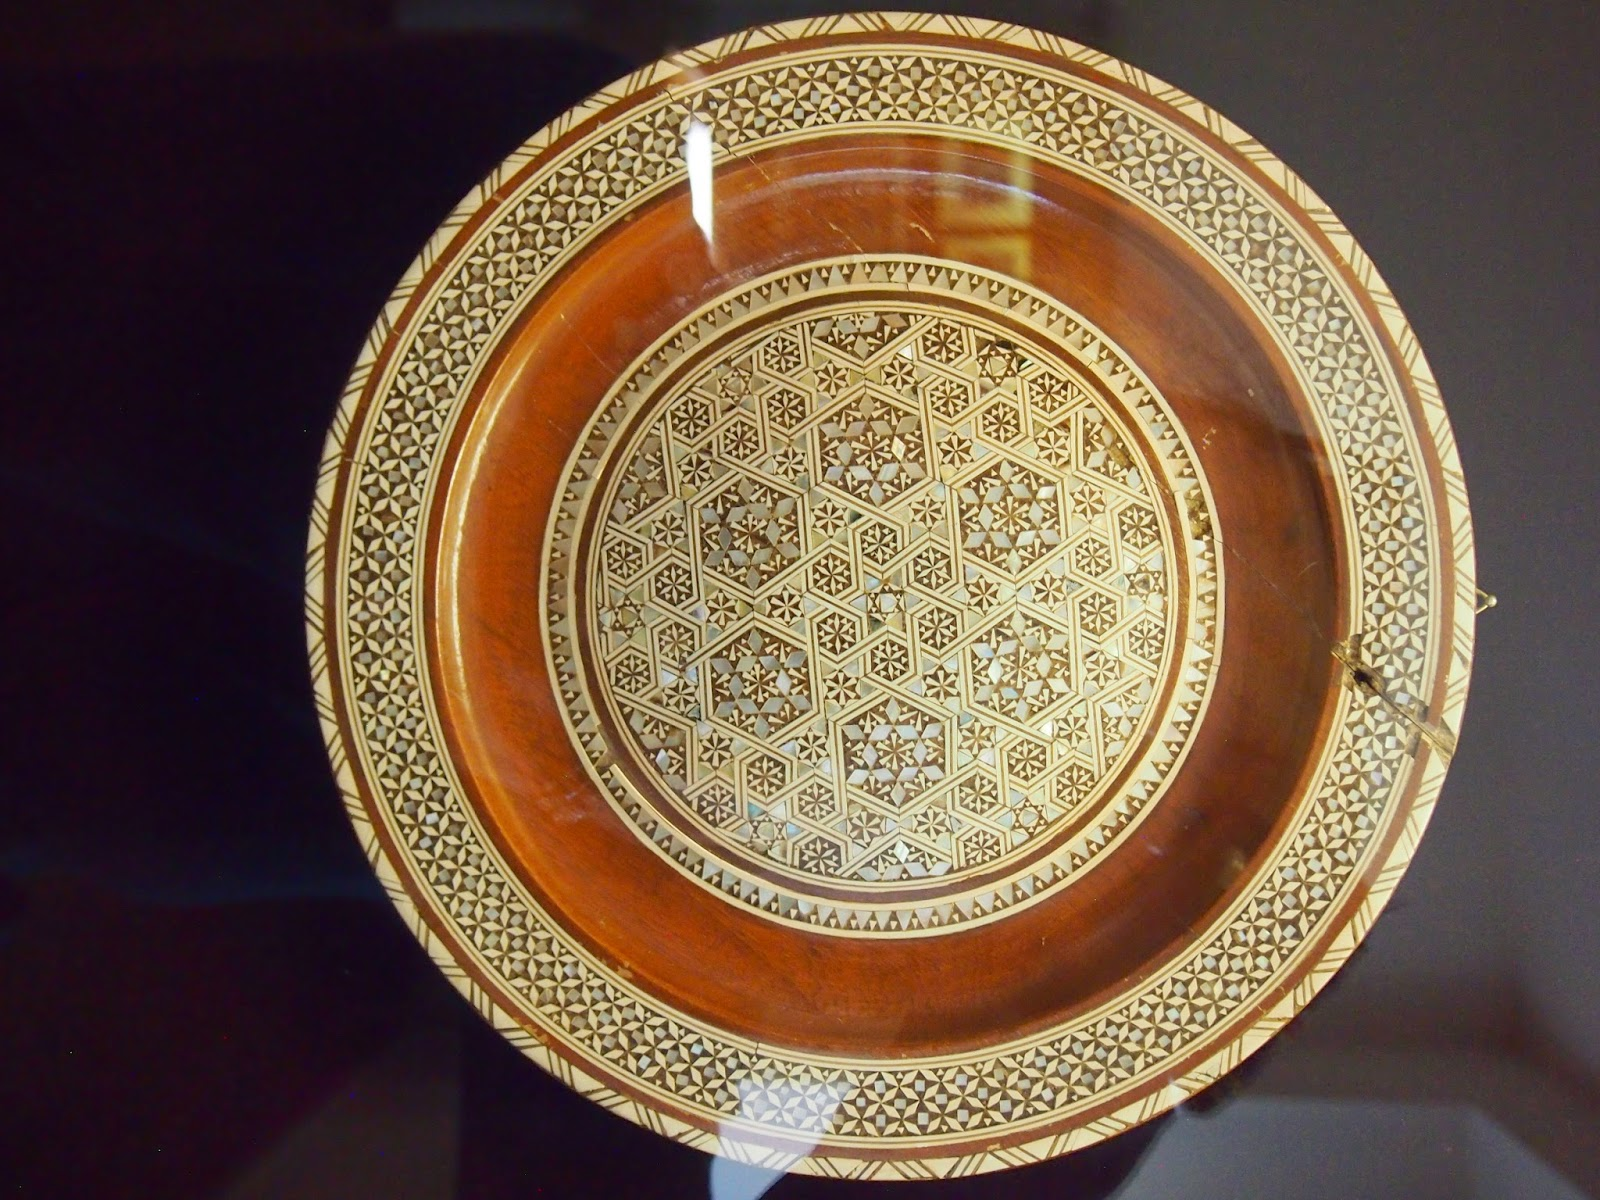 A brown and white decorative plate by Karaites in Trakai